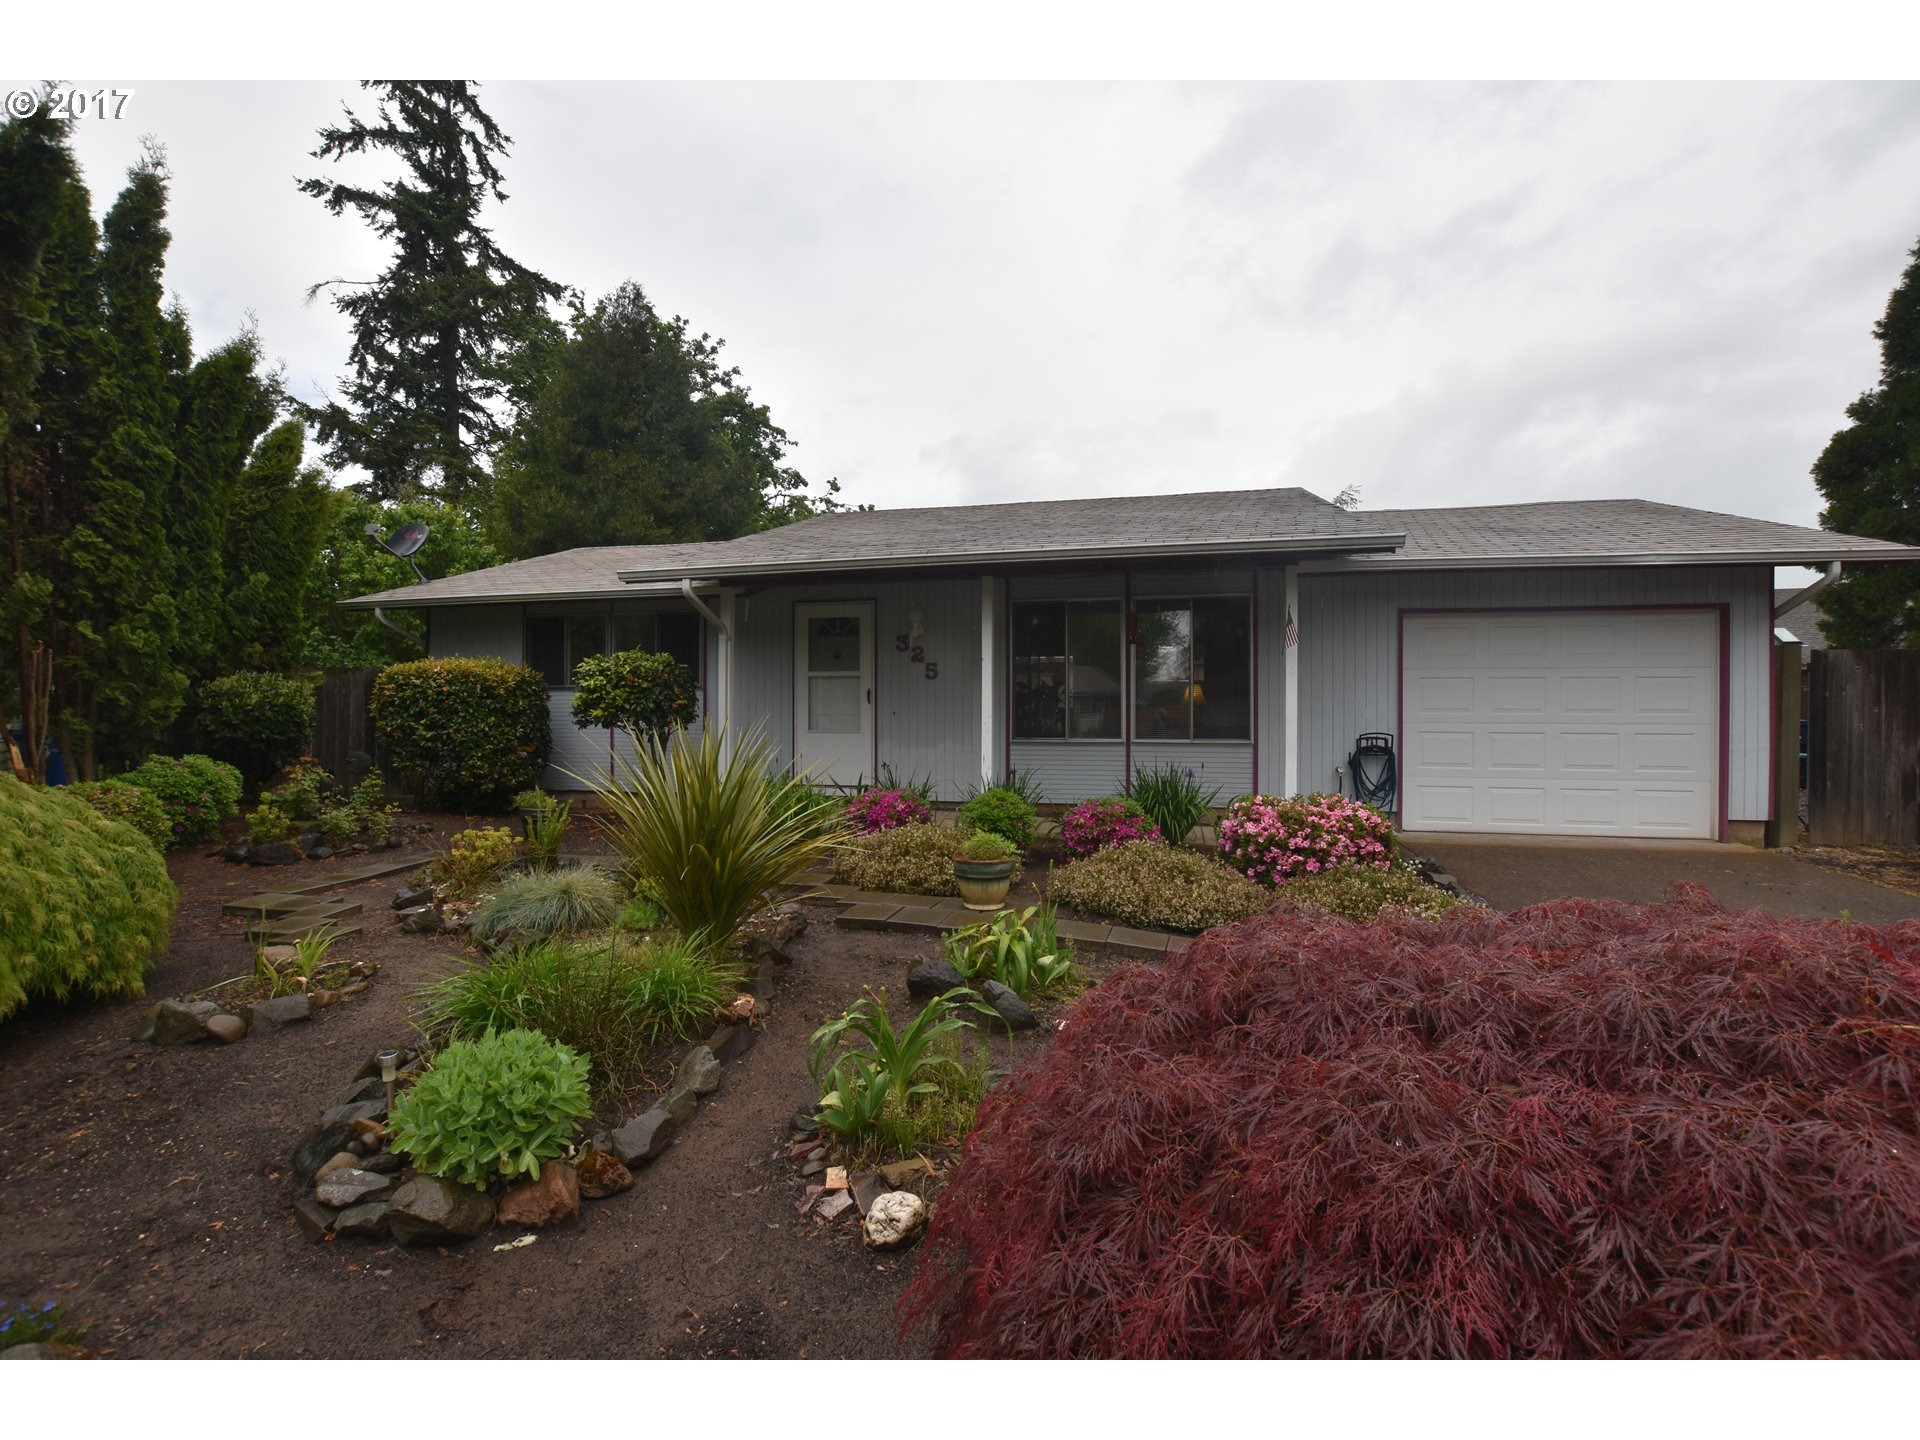 325 WICKHAM CT, Eugene, OR 97404